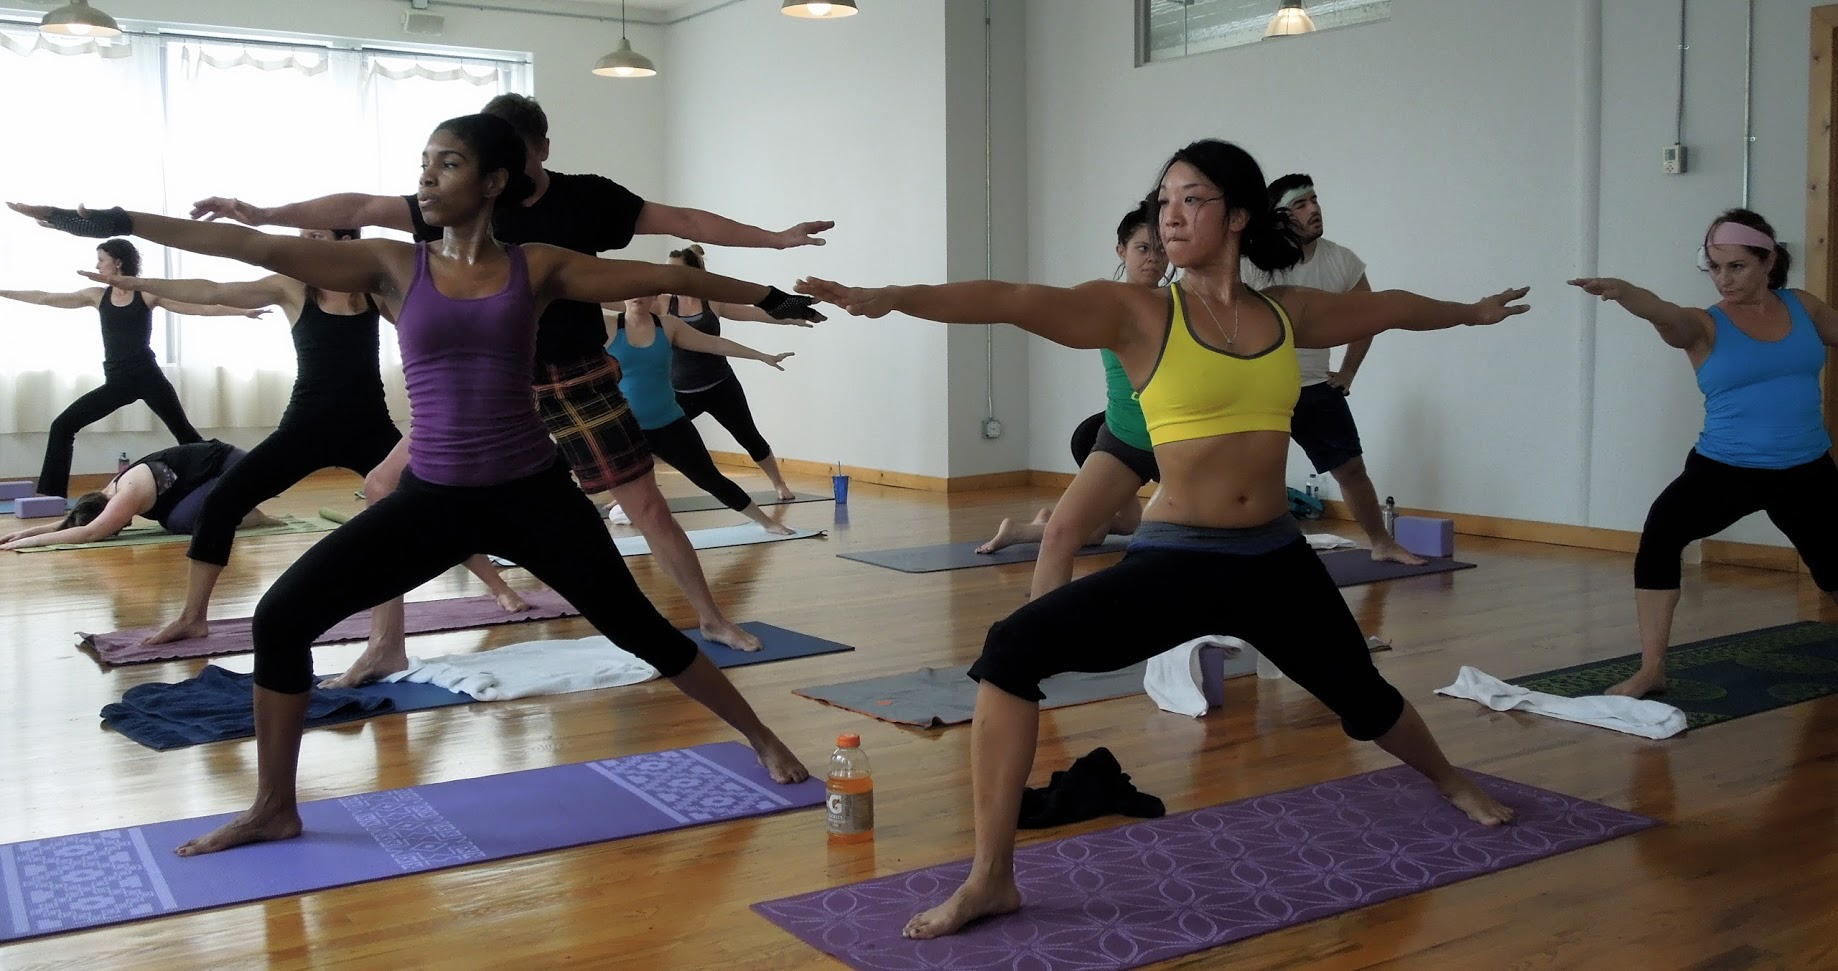 New Student Special   $21 for 21 Days of Unlimited Yoga    Sign Up